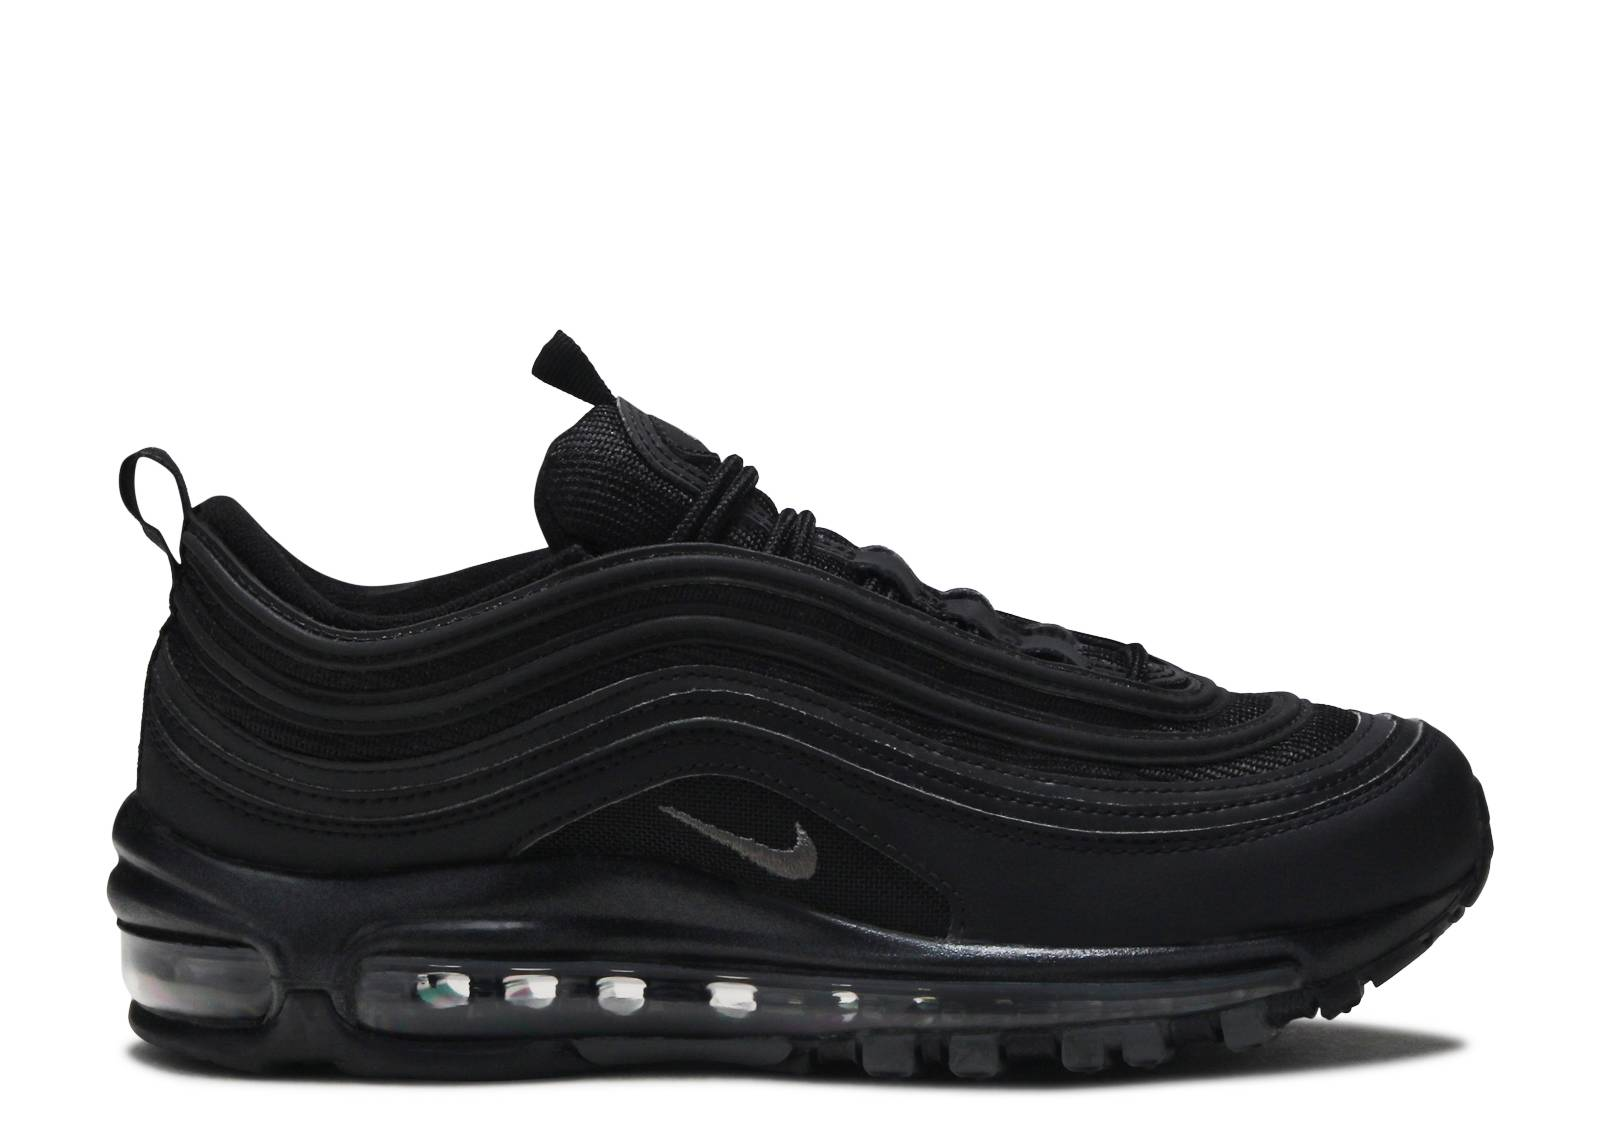 NIKE AIR MAX 97 ETERNAL FUTURE Black/Anthracite/Metallic